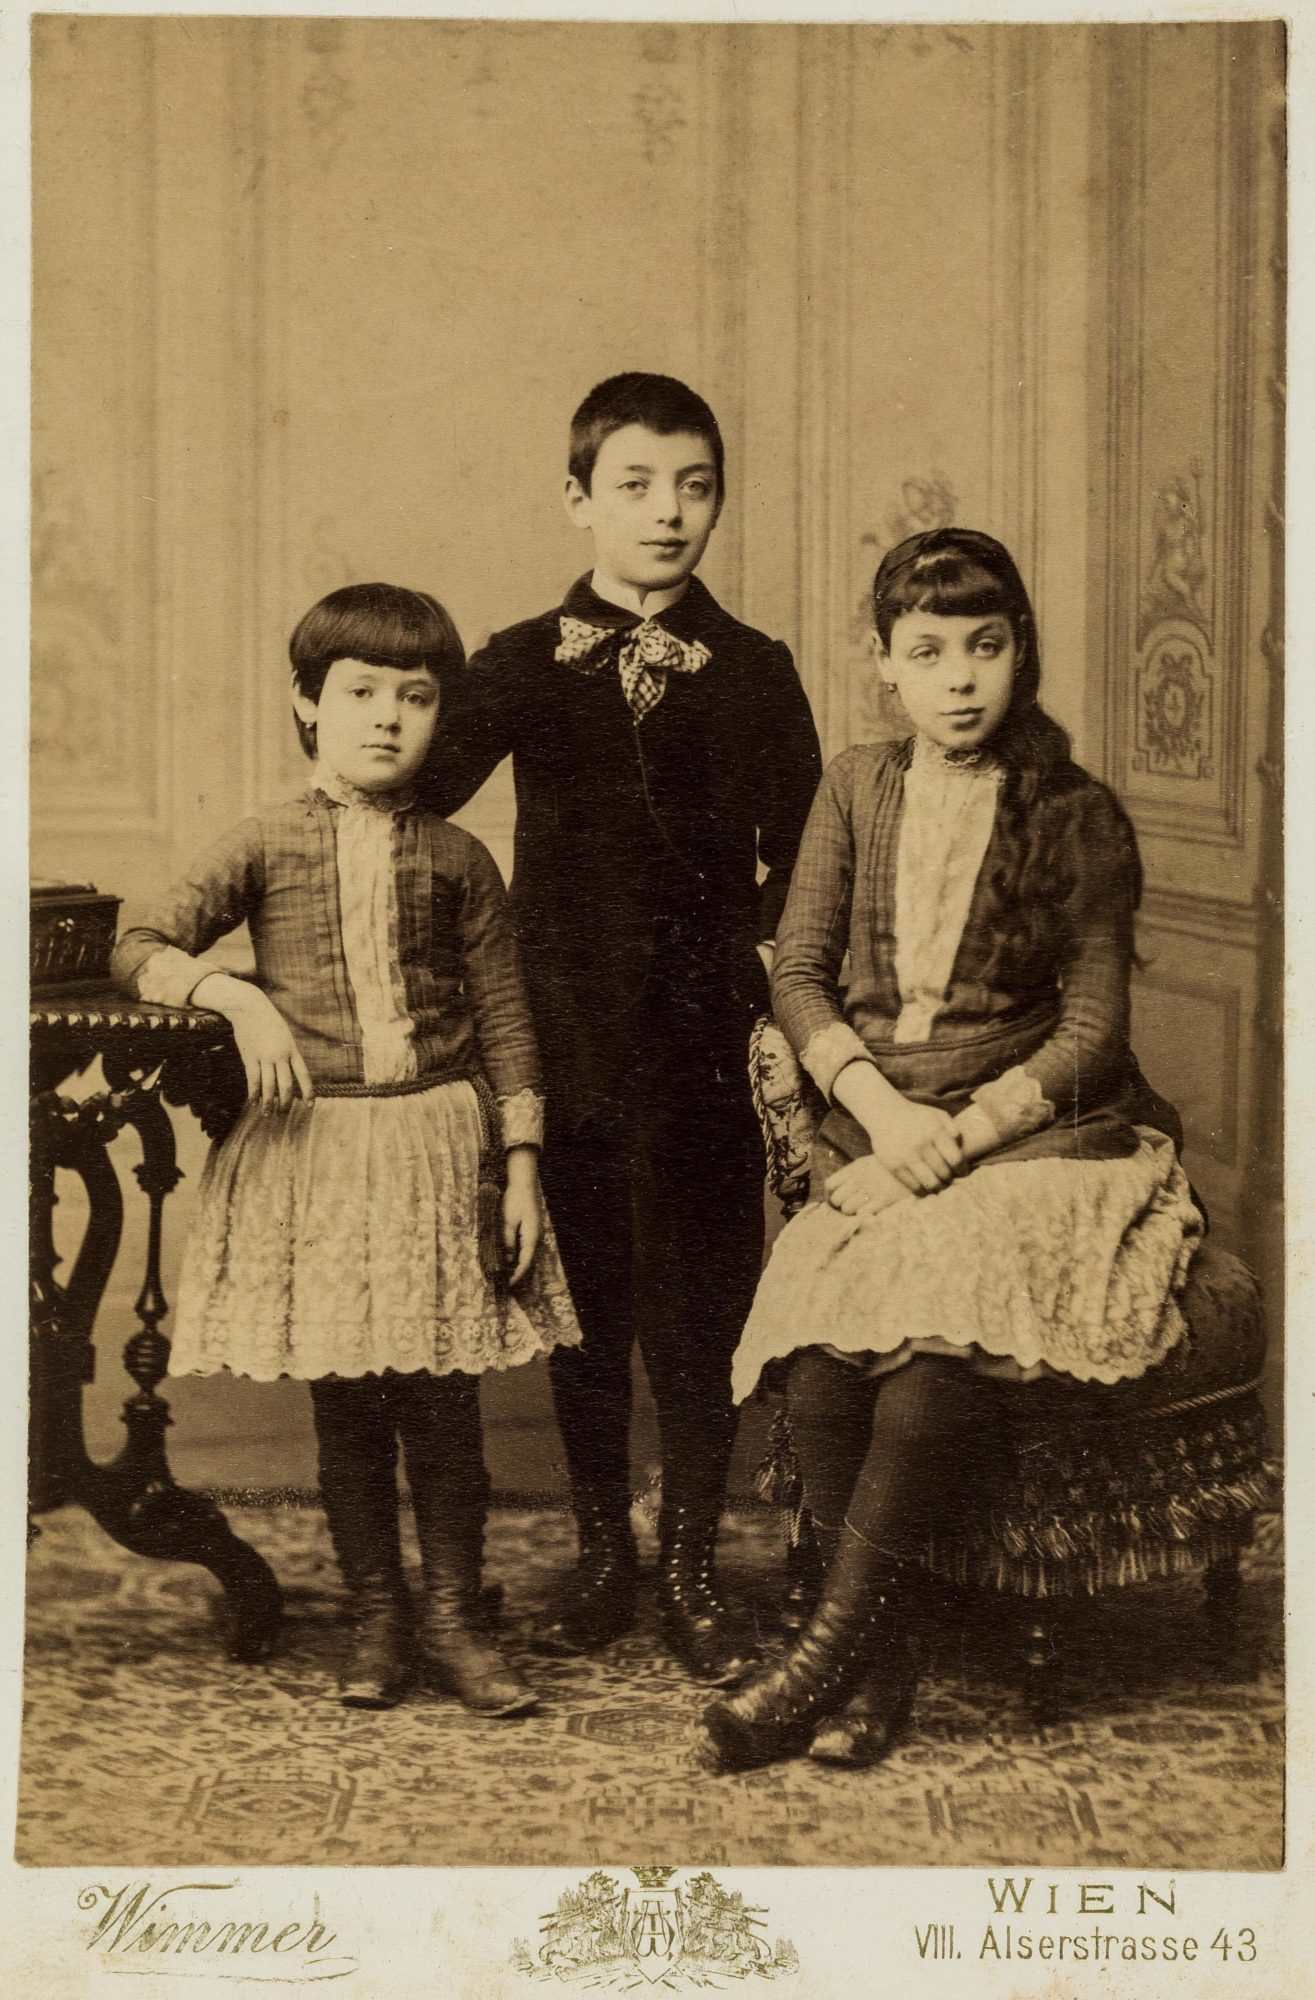 Melanie, Emmanuel and Emilie Reizes as young children in 1887